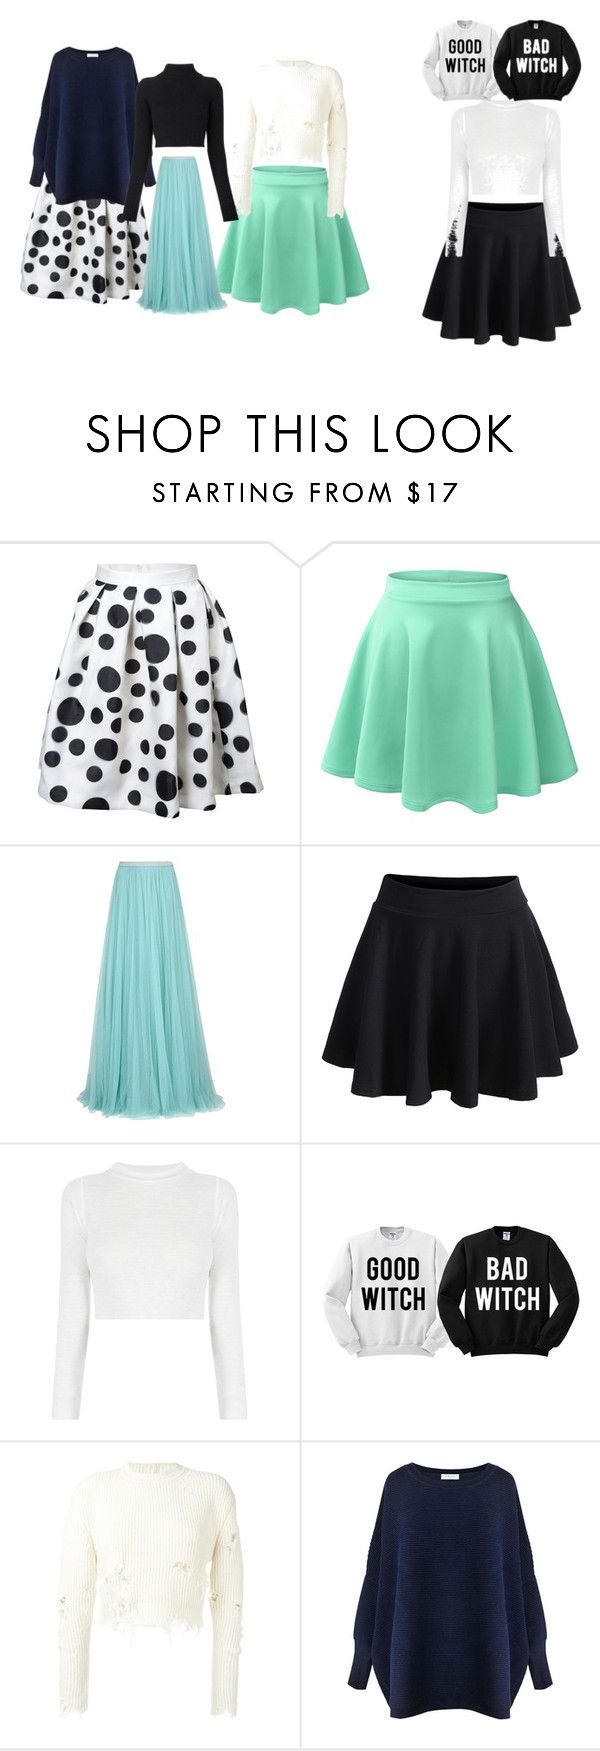 """""""skirts"""" by tahrahholmes ❤ liked on Polyvore featuring LE3NO, Jenny Packham, WithChic, adidas Originals, Paisie and Balmain"""